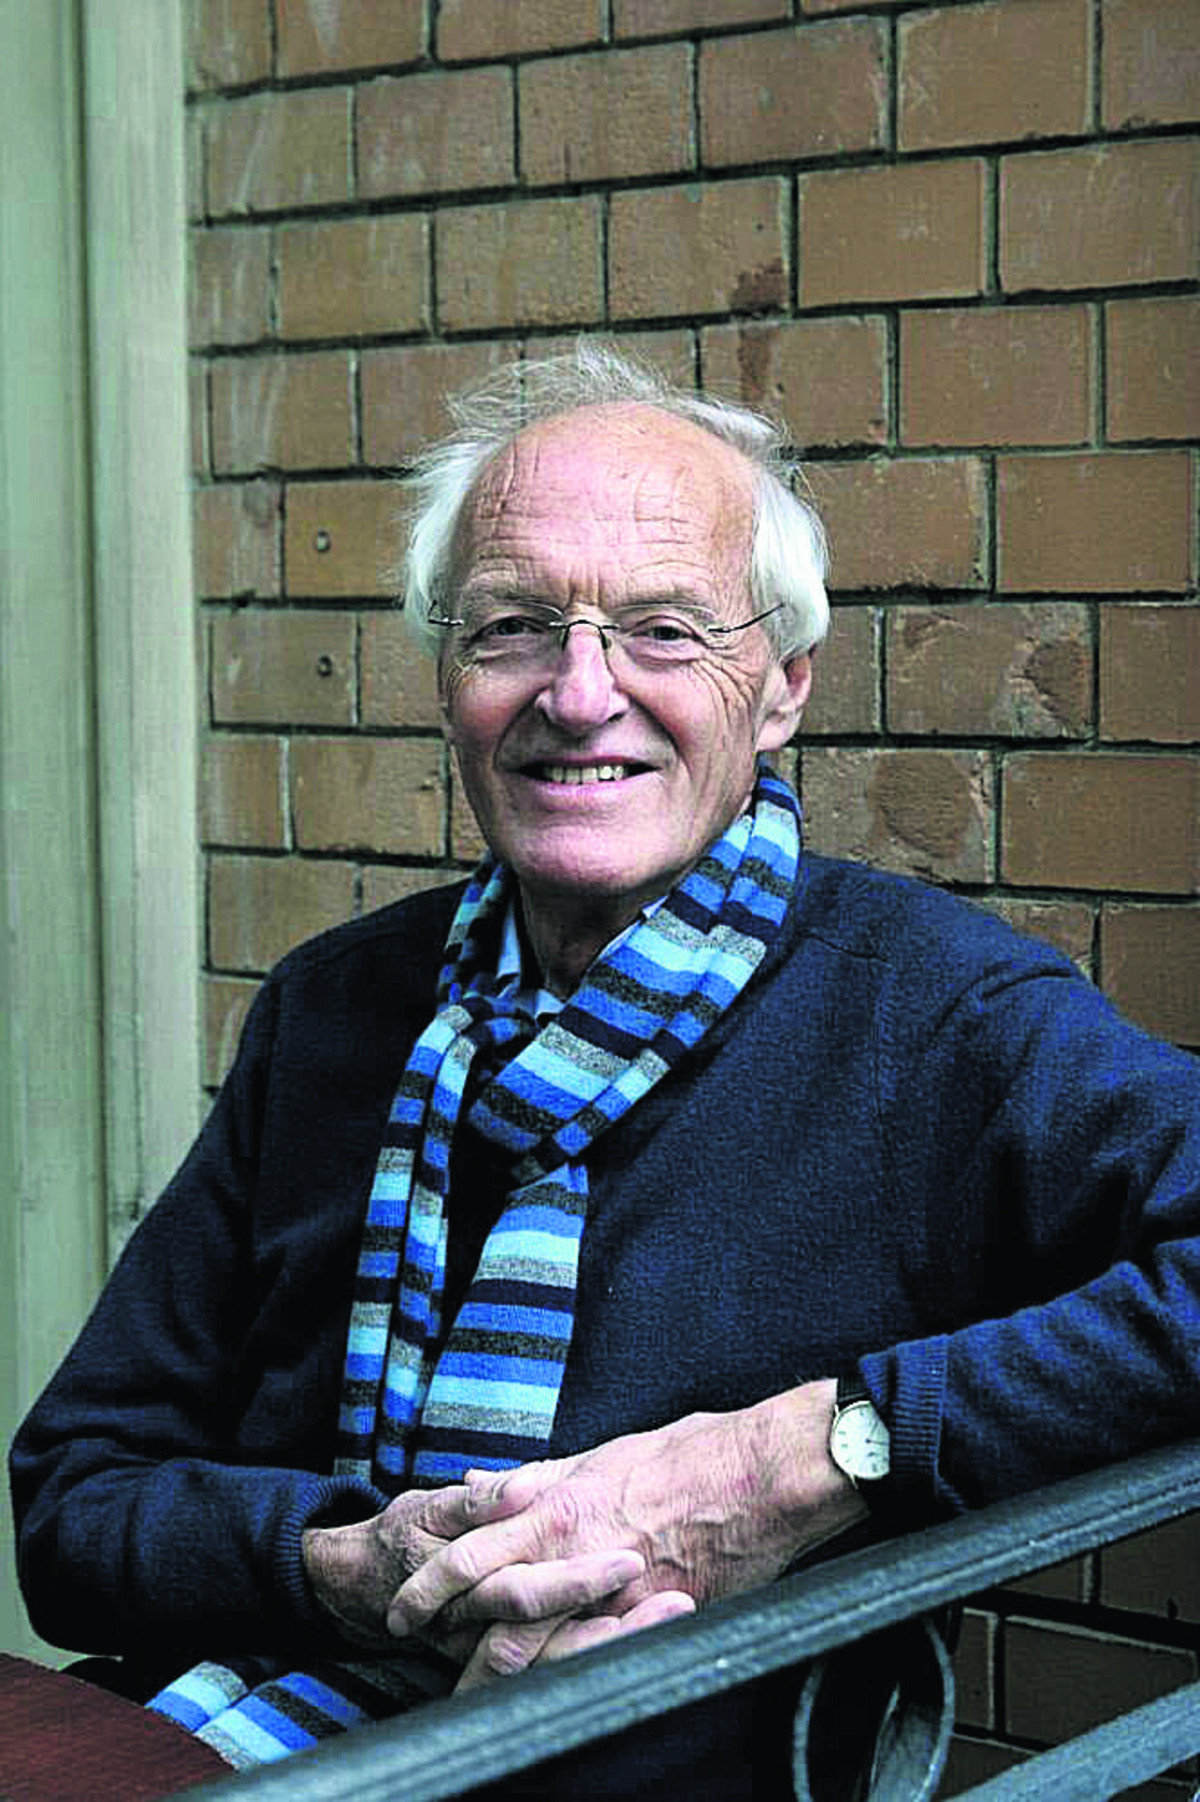 a biography of michael frayn an english playwright novelist and translator A biography of michael frayn, an english playwright, novelist and translator pages 1 words 910 micheal frayn, london, translator.